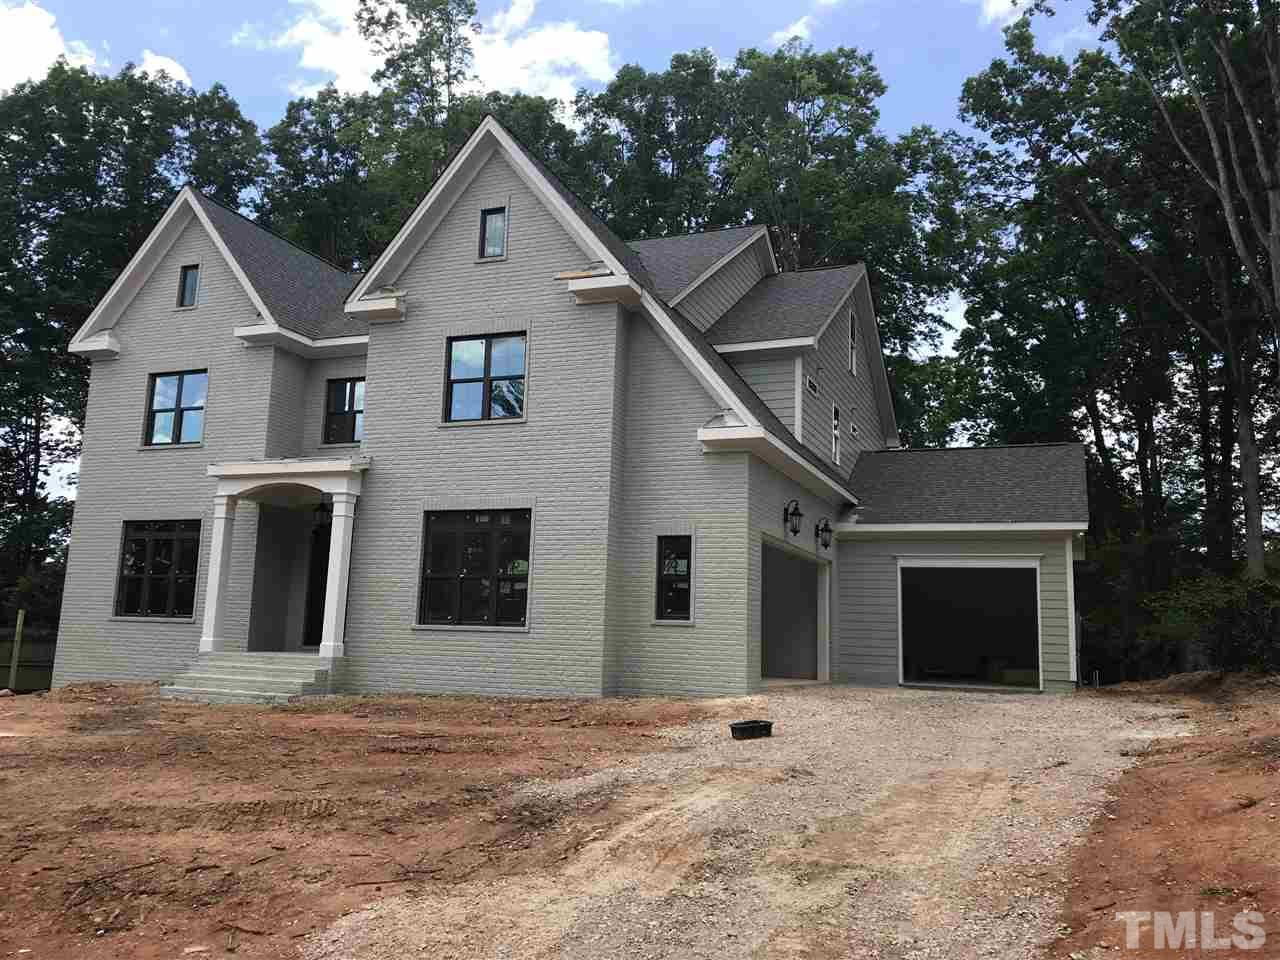 Wonderful New Construction walking distance to North Hills shopping and restaurants.  Open kitchen family room with formal dining room and guest bedroom +full bathroom. Screen porch with fireplace overlooking private yard. 10' ceilings 1st floor 9' 2nd floor.  3 car garage, 3 bedroom, 3 full bathrooms + large bonus room. 3rd floor is finished into additional bonus room with a full bathroom.